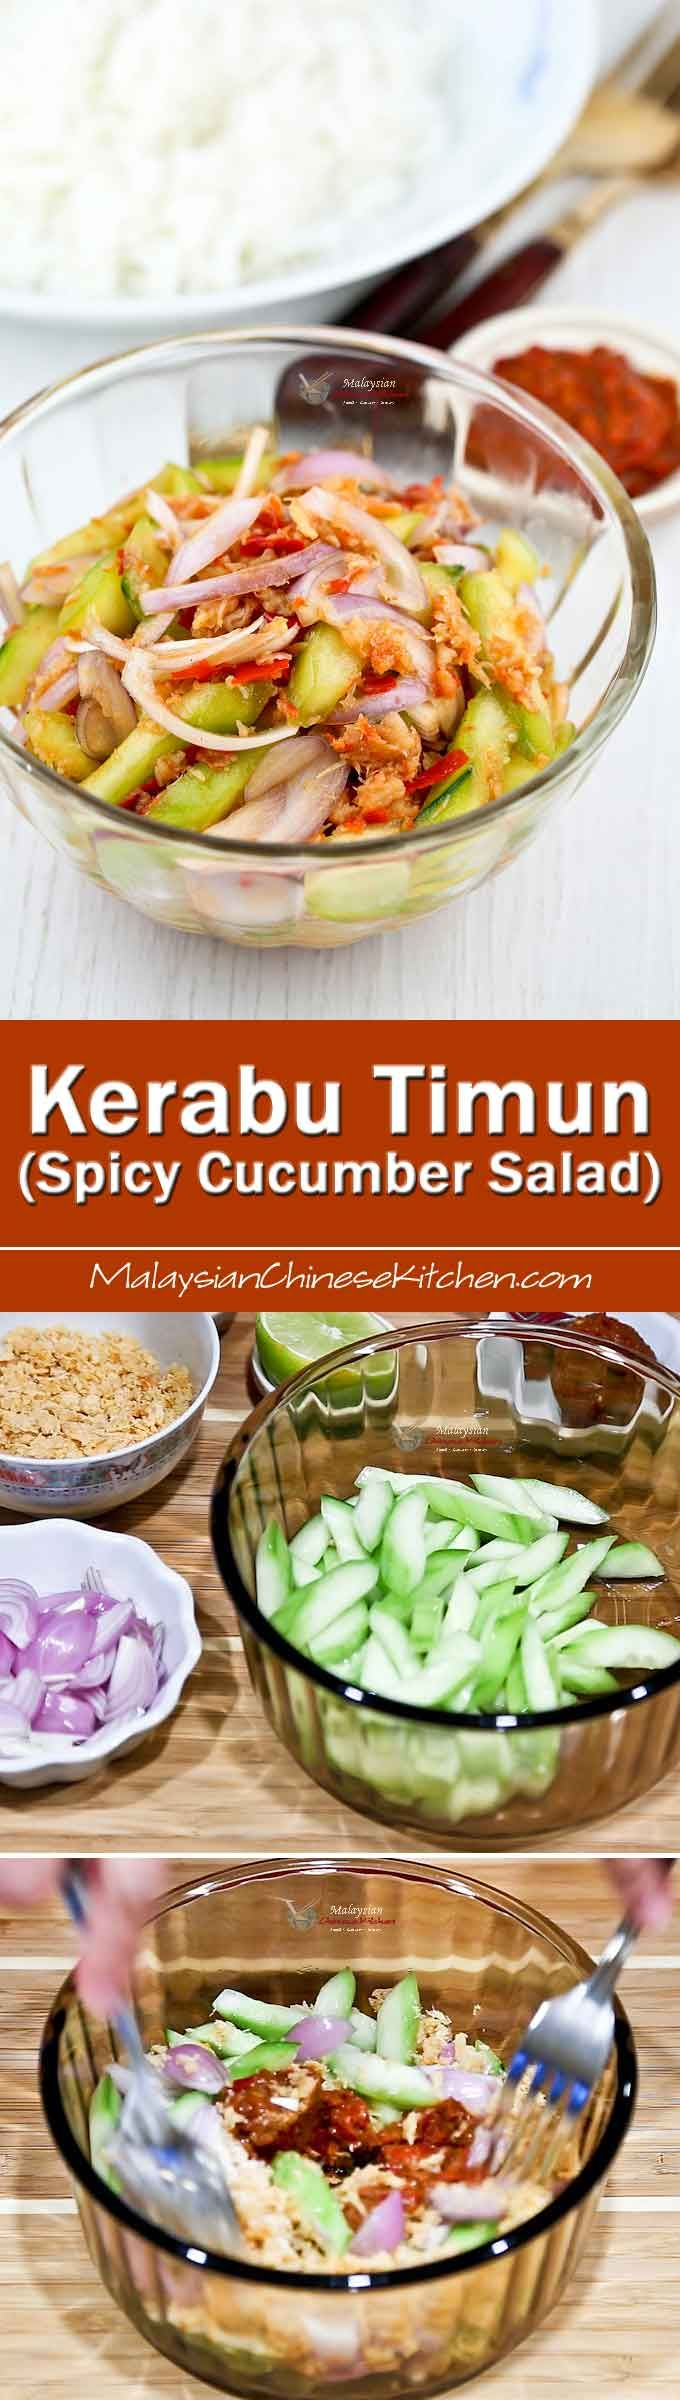 95 best malaysian chinese kitchen images on pinterest asian food kerabu timun spicy cucumber salad is a spicy and appetizing malaysian salad that is spicy recipesasian food recipesvegetable forumfinder Choice Image